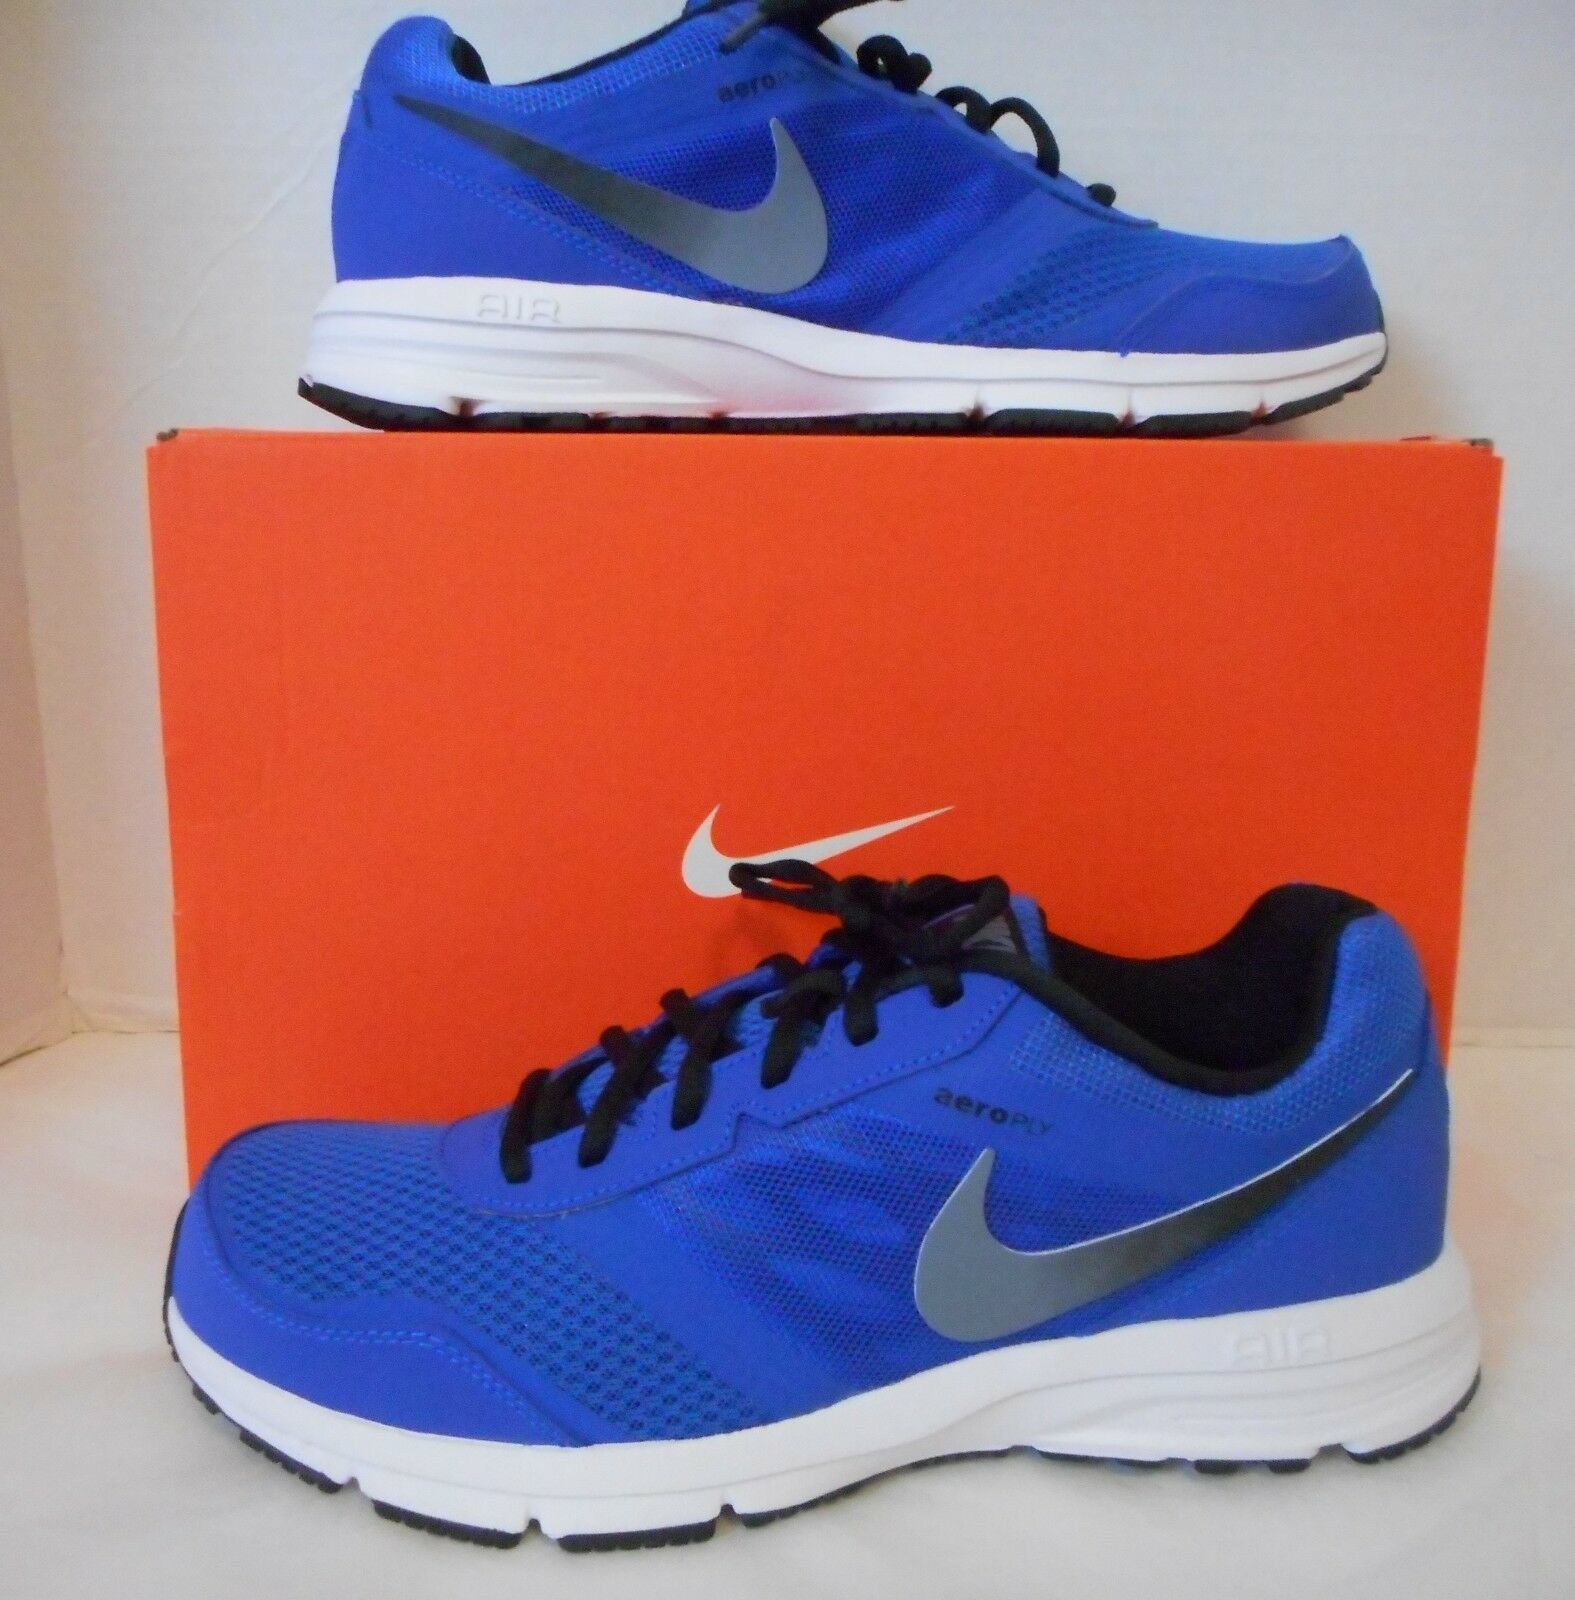 NIB Nike Men's Air Relentless 4Athletic Running  shoes Lyon bluee Sizes 9, 9.5, 13